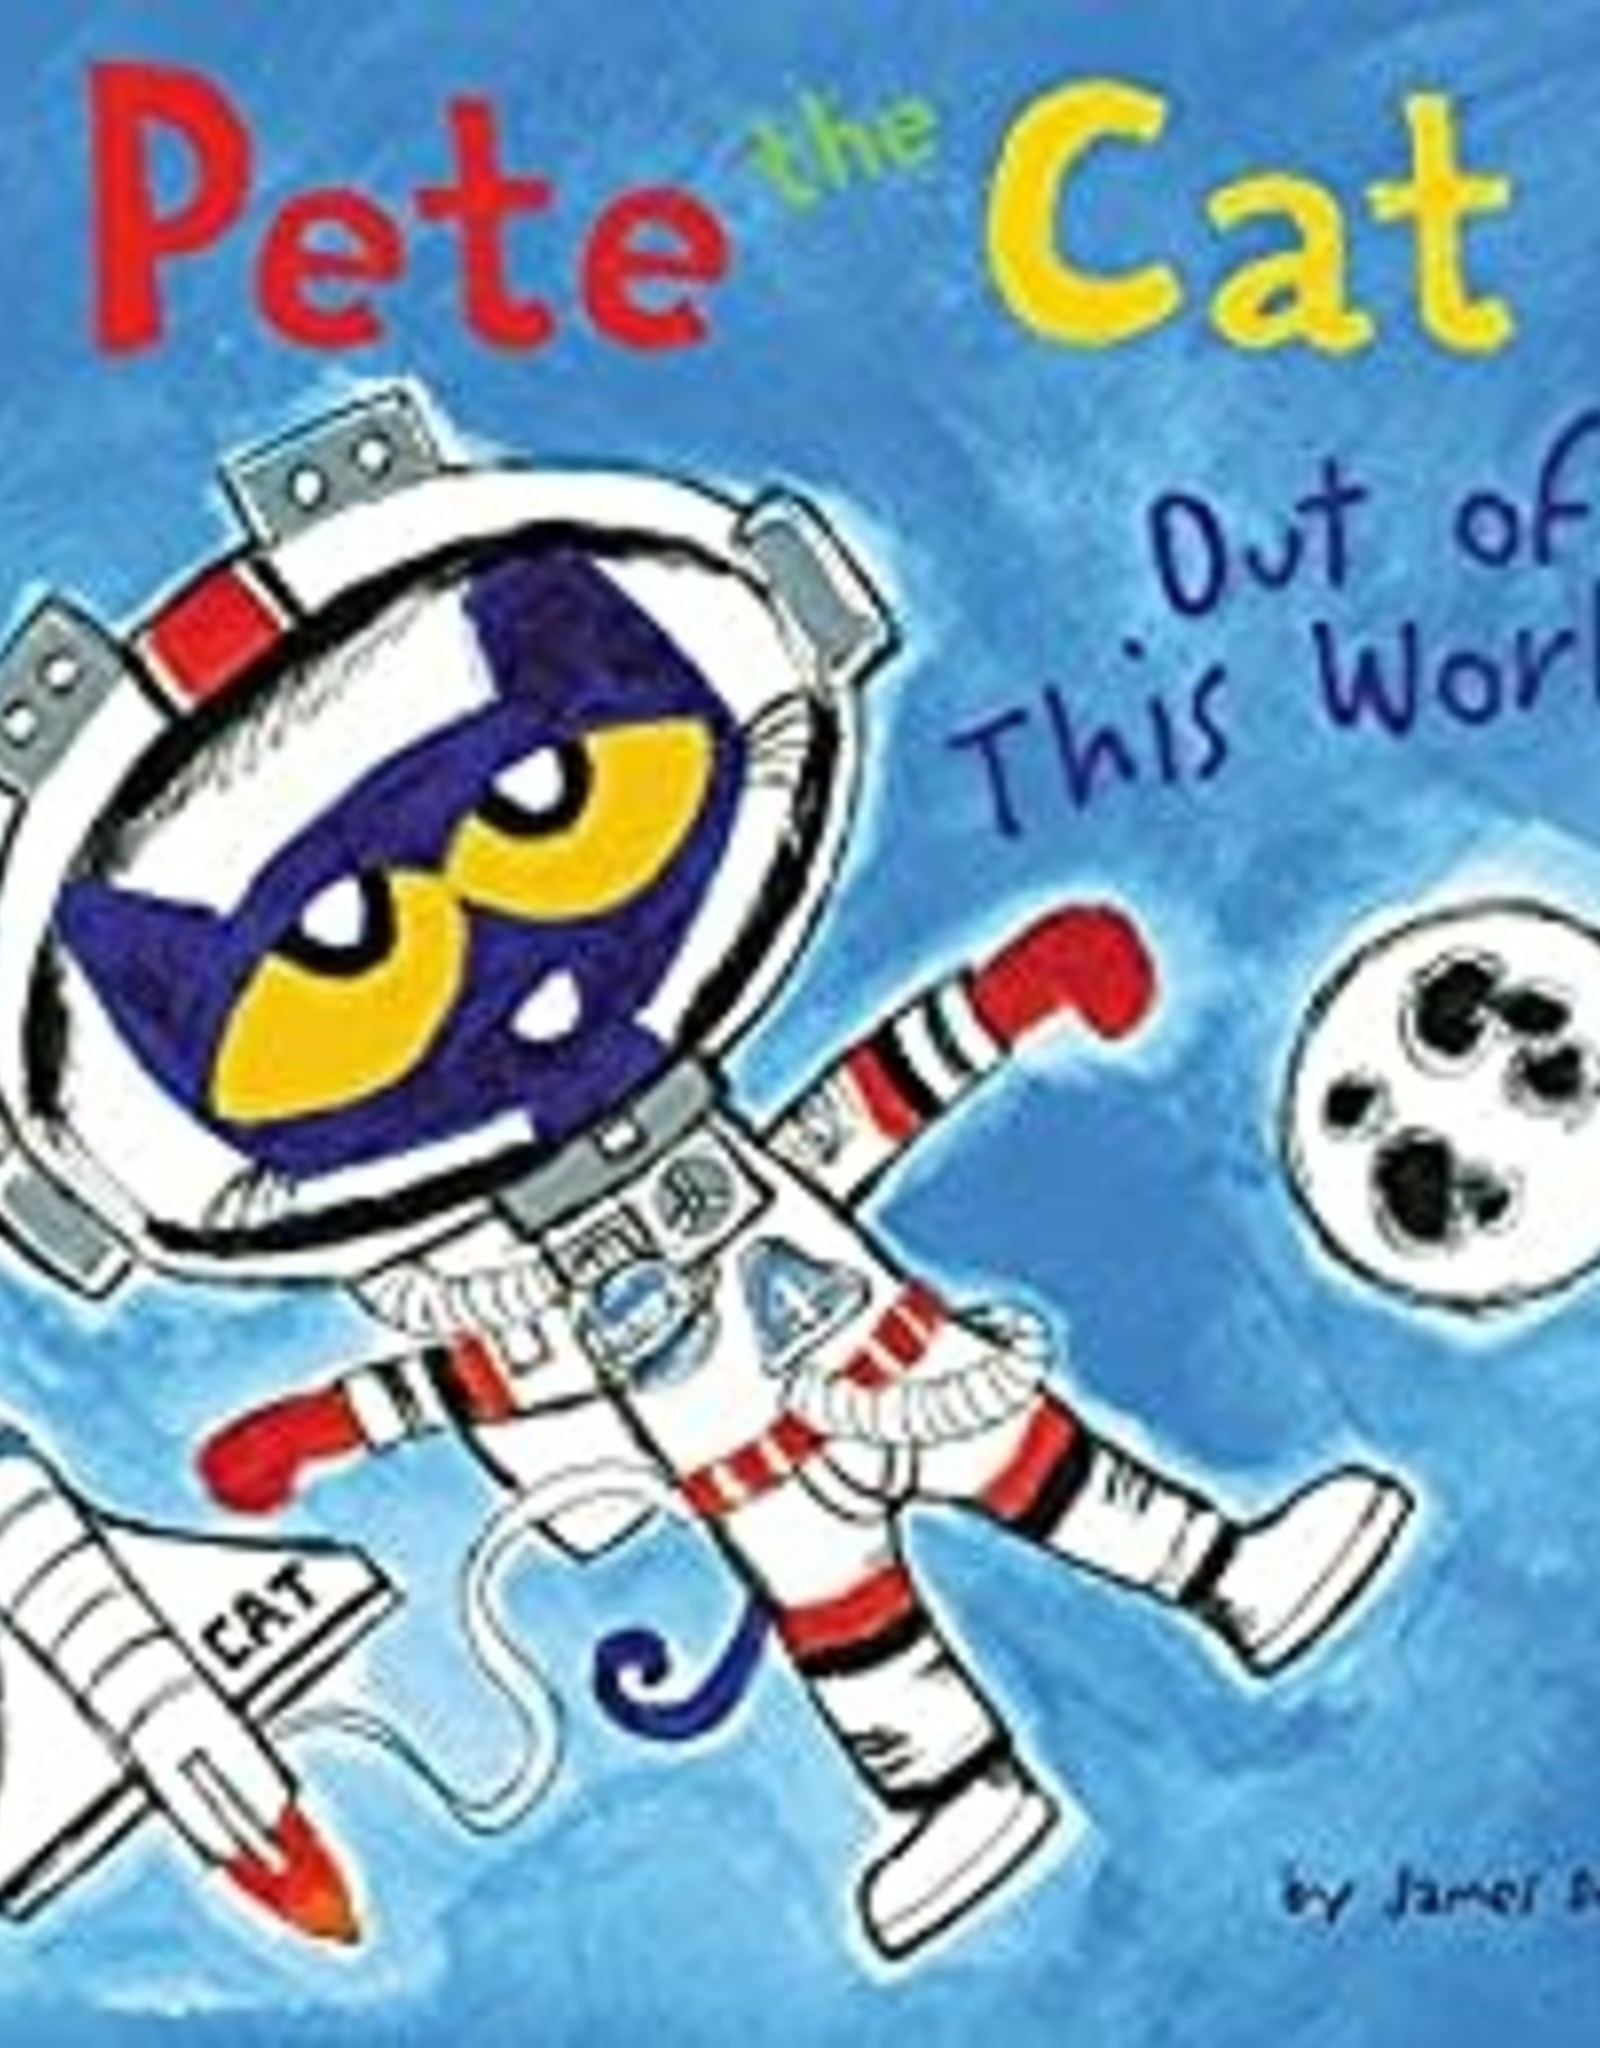 HarperCollins Pete the Cat - Out of this World